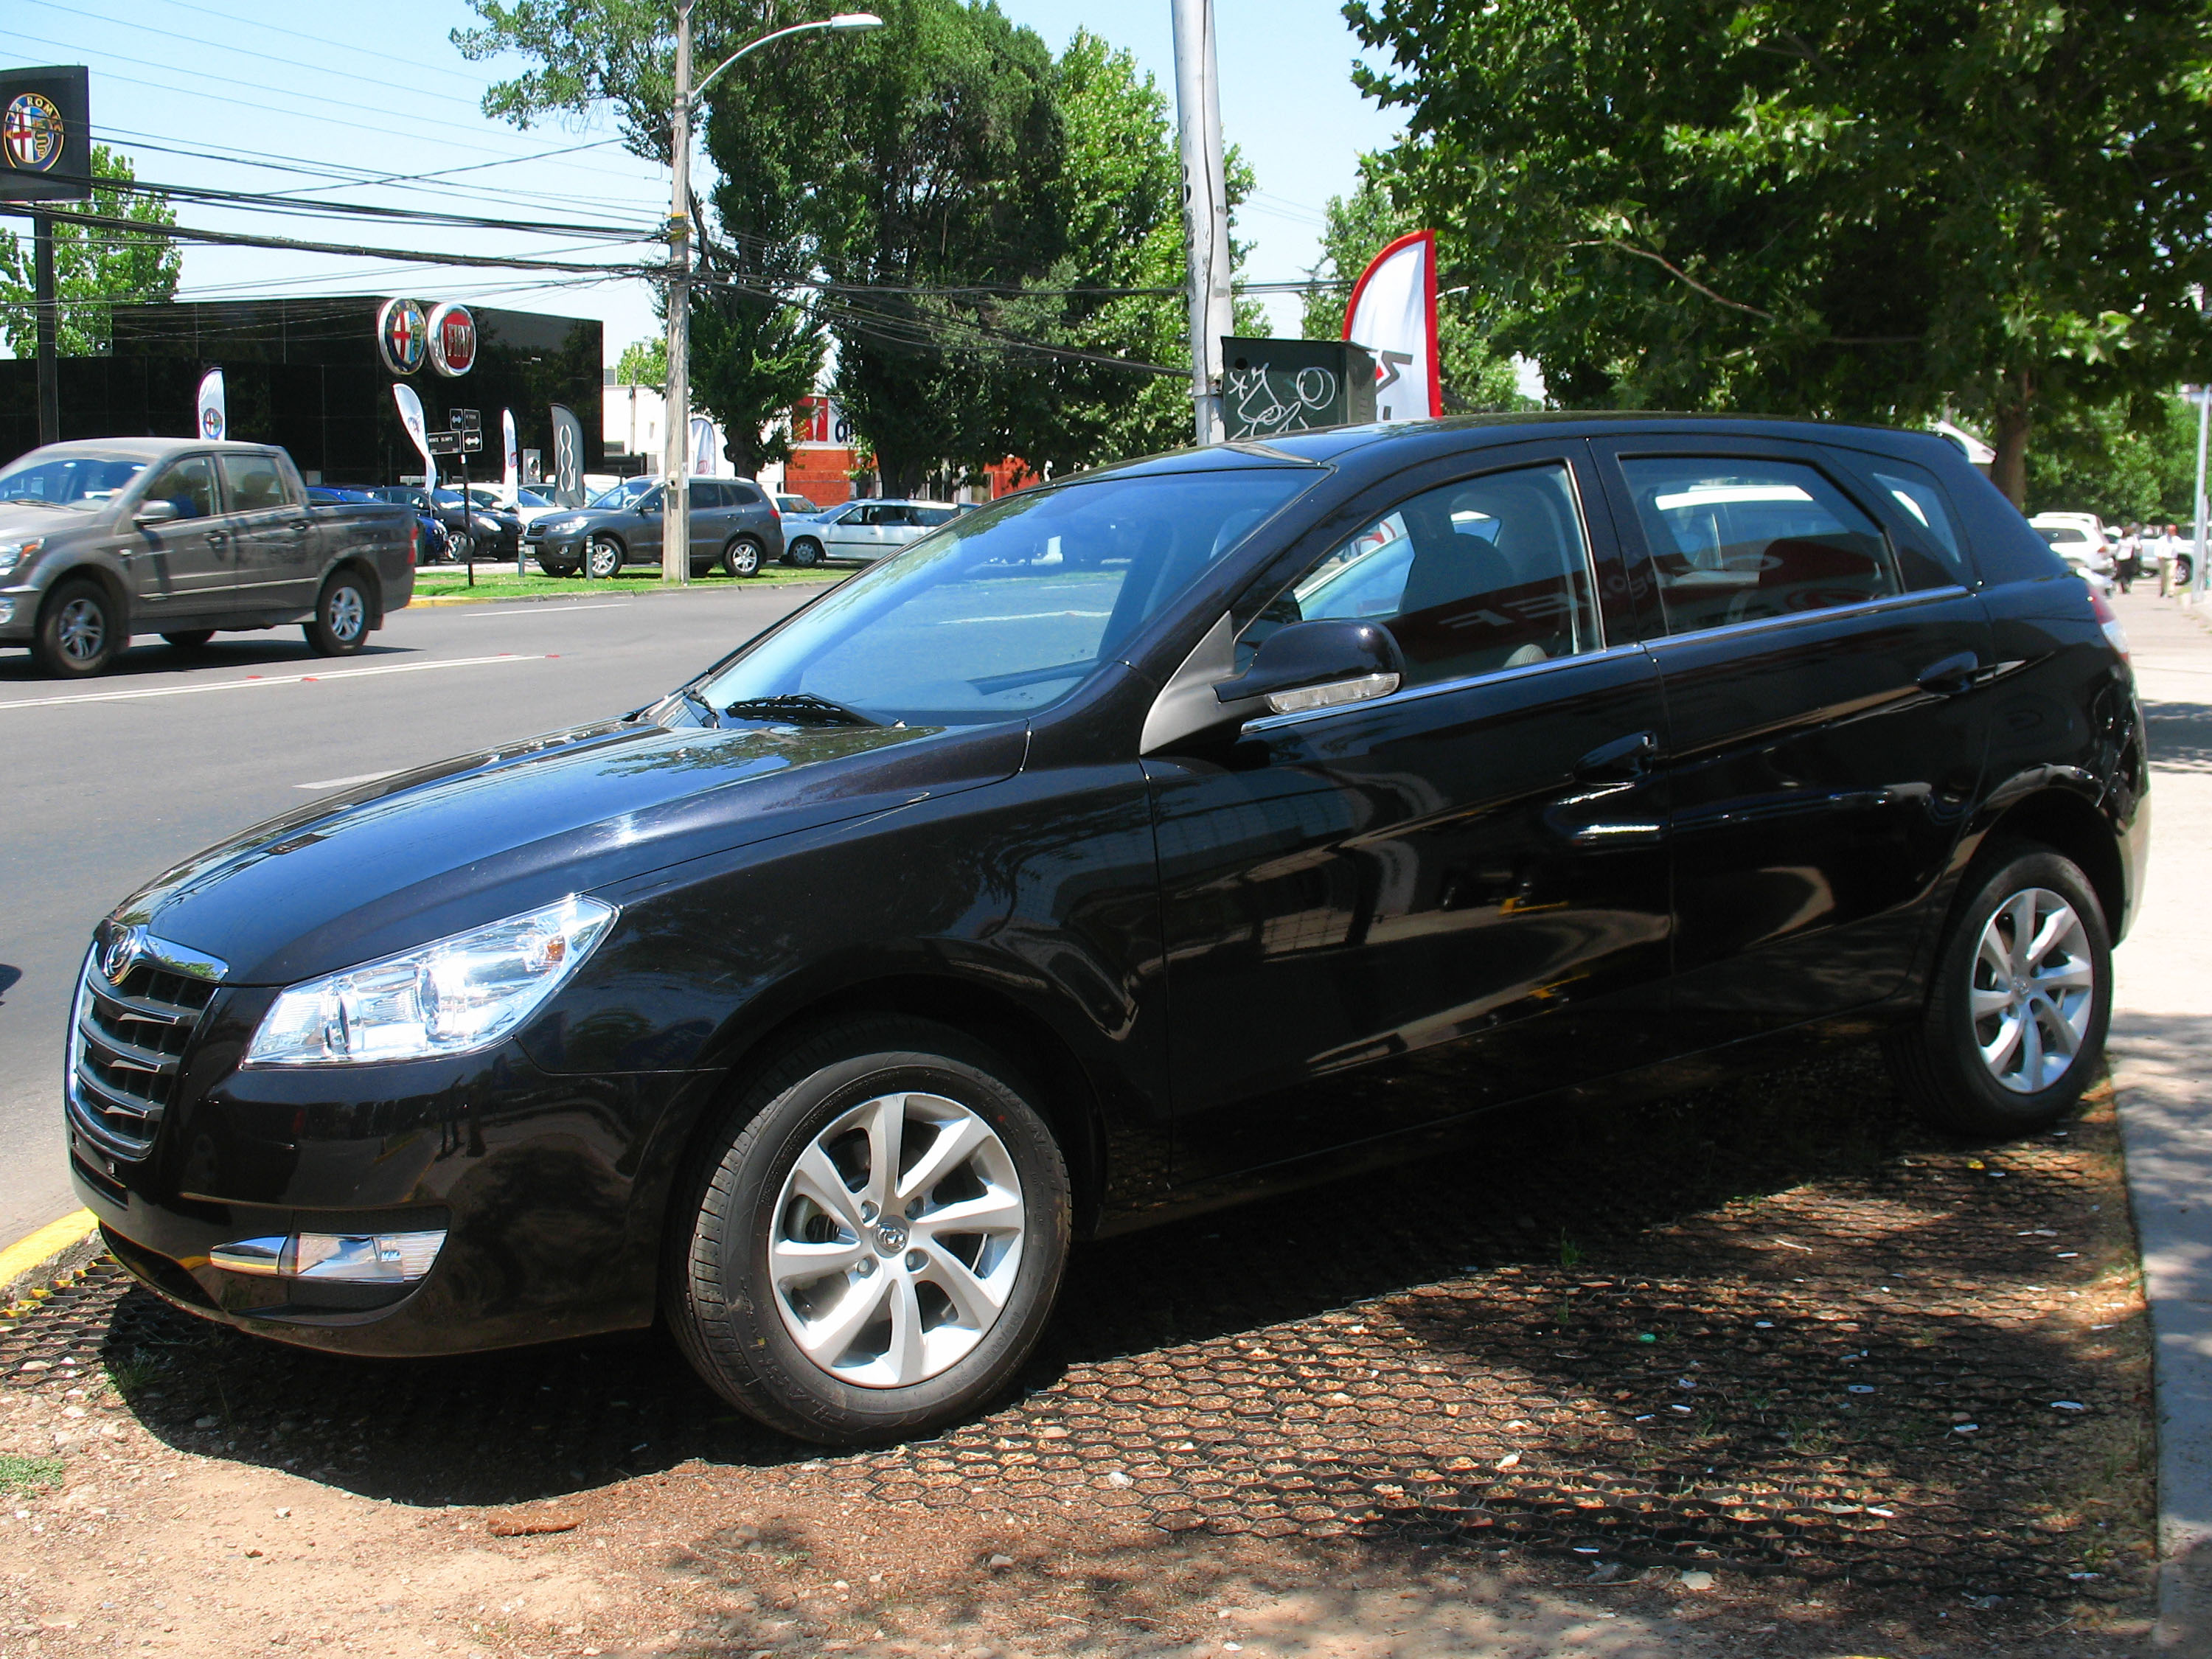 DongFeng H30 1.6 2013 photo - 1